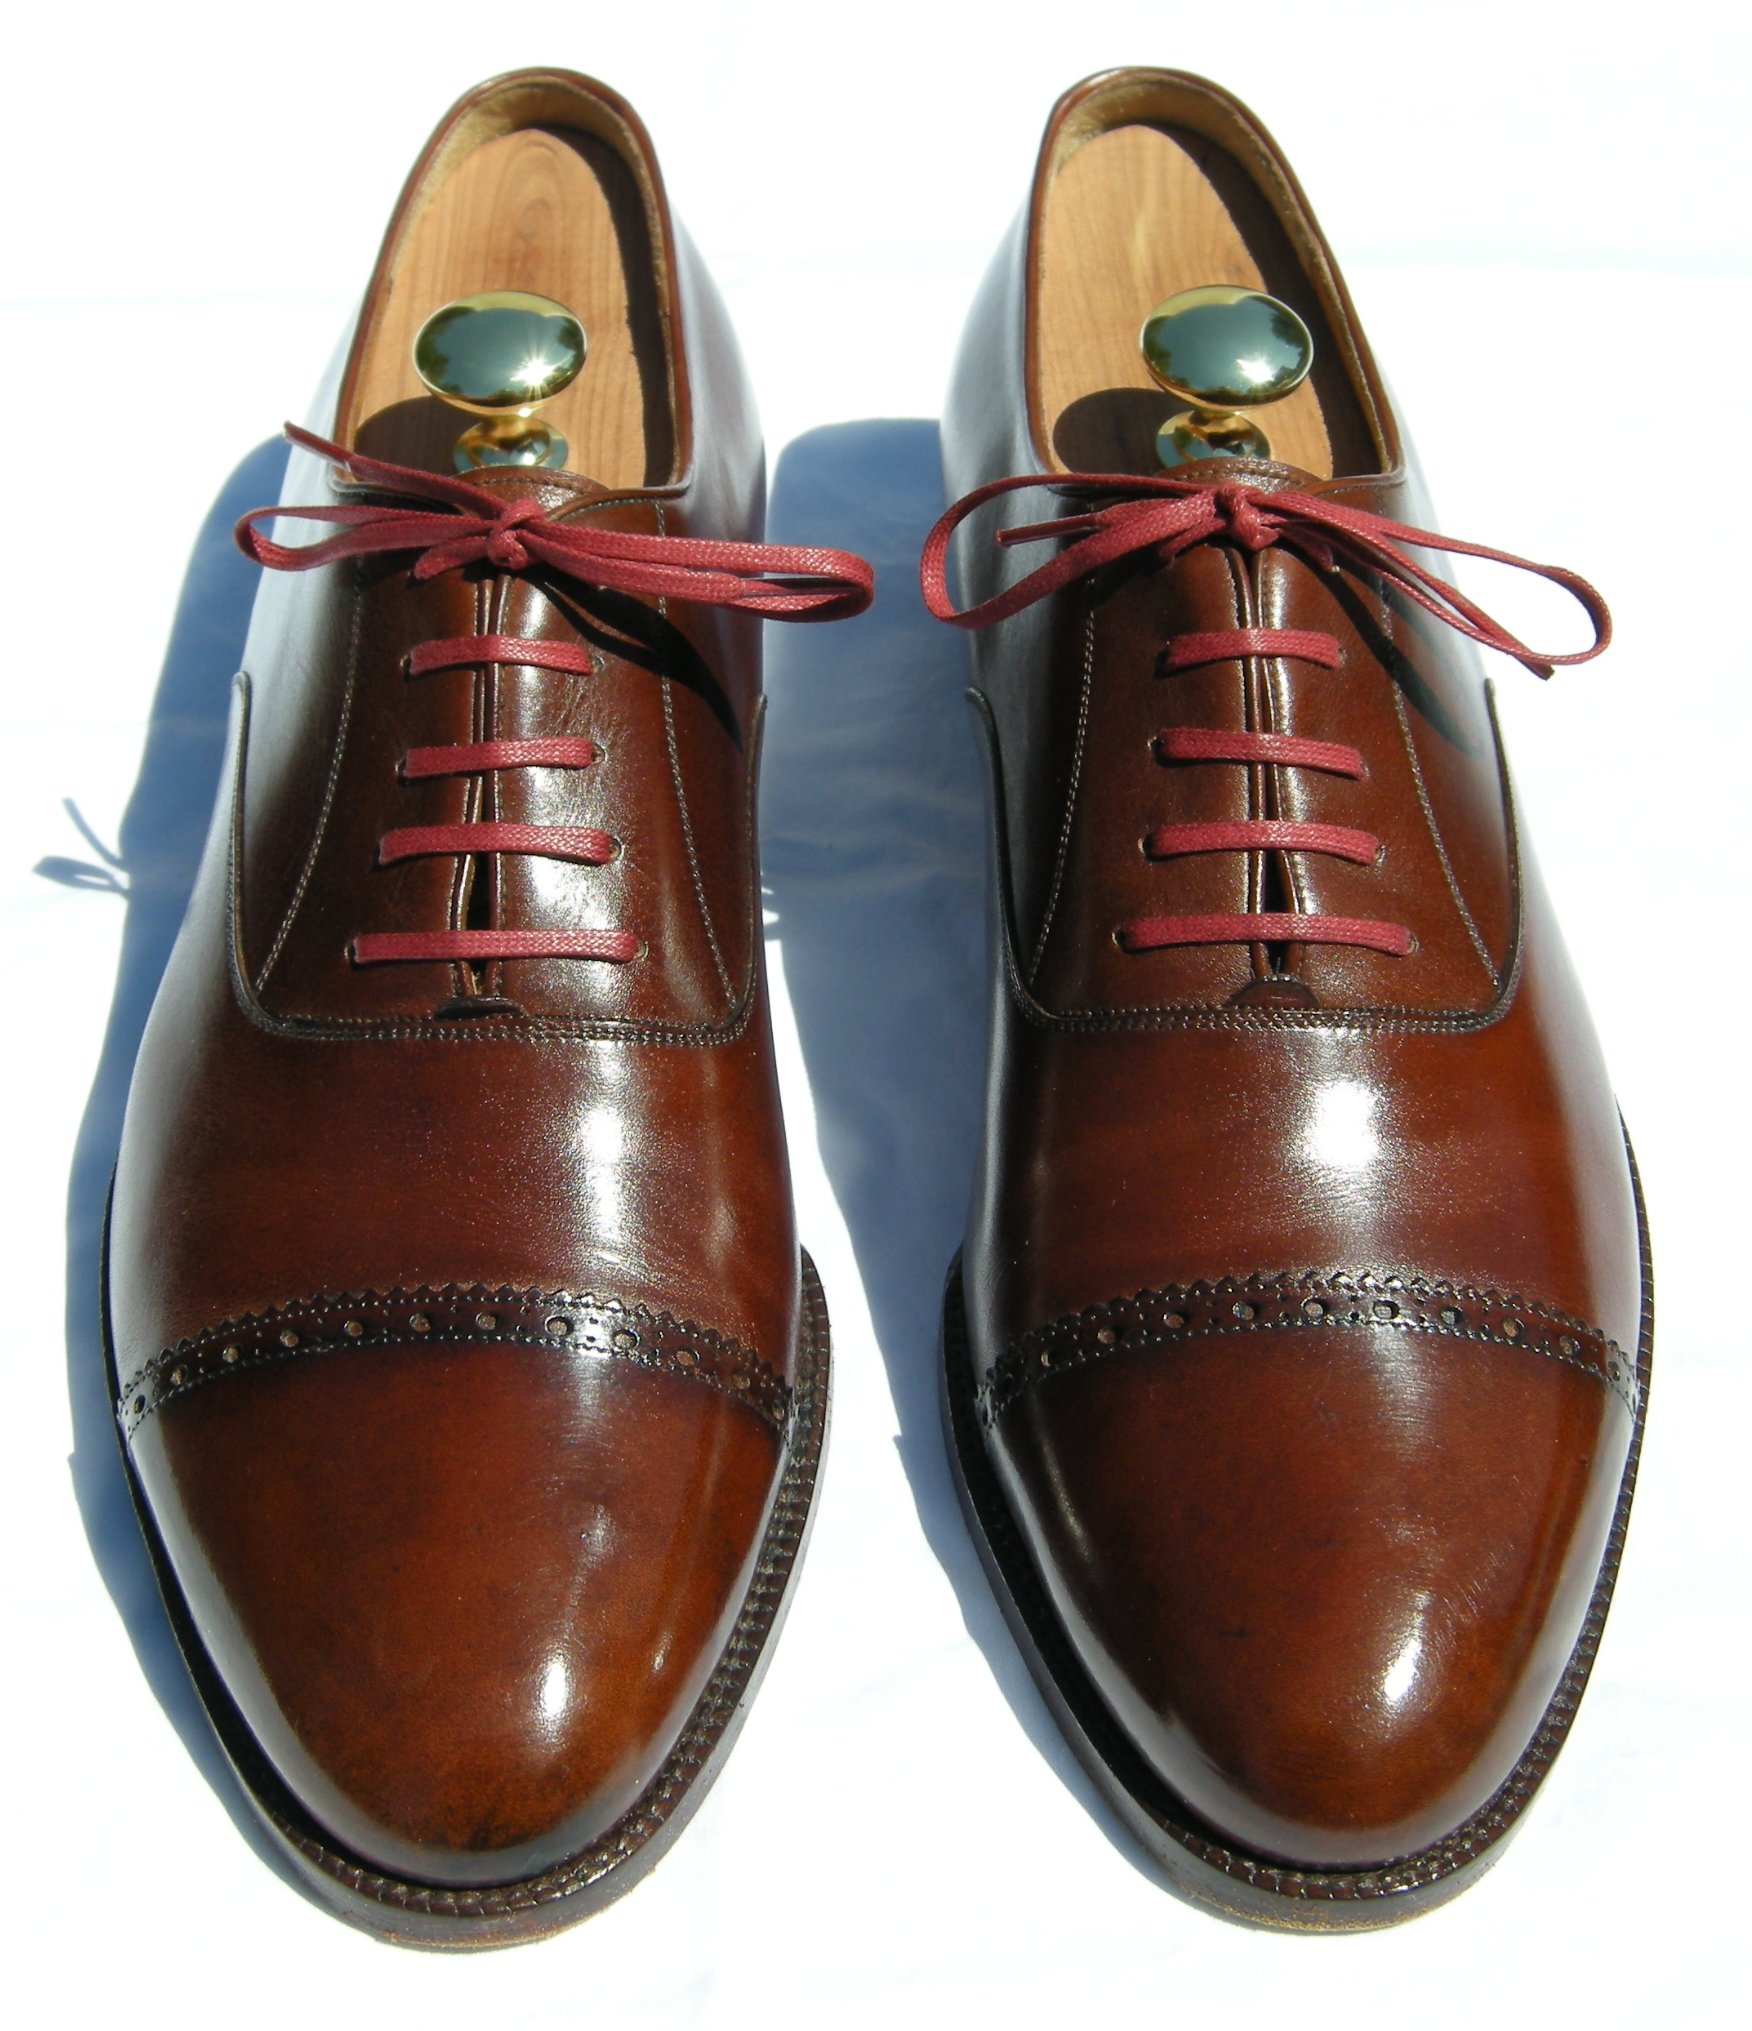 what s the opinion on colored shoe laces for dress shoes